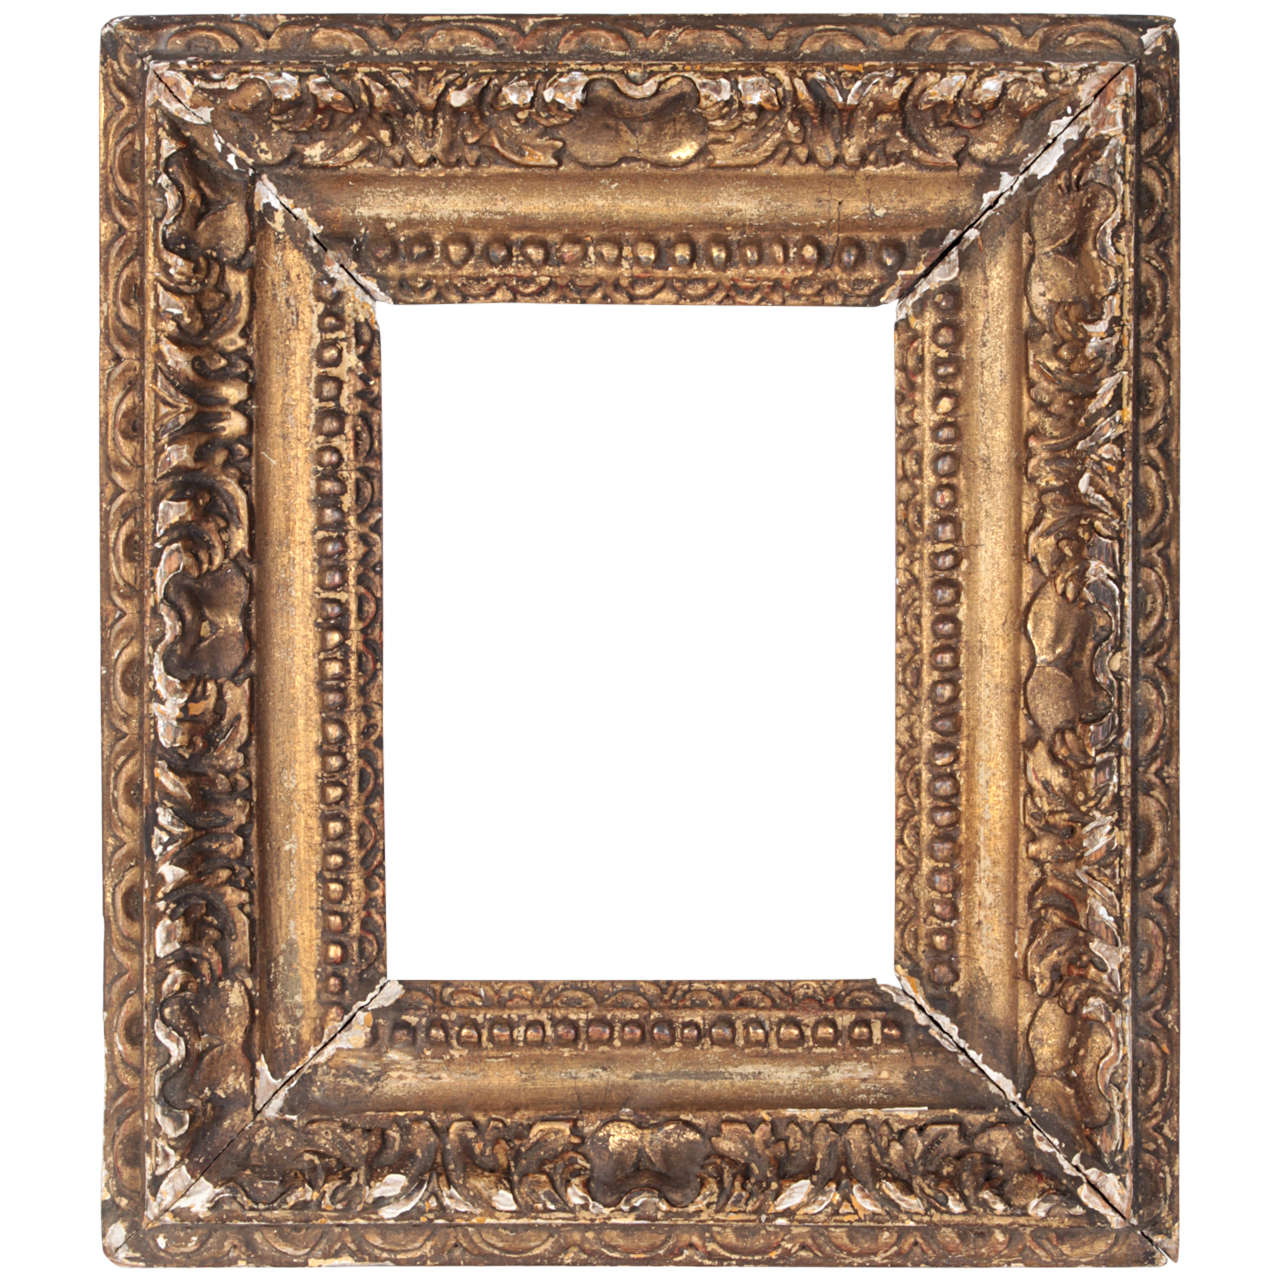 Late 18th Century Italian Frame At 1stdibs